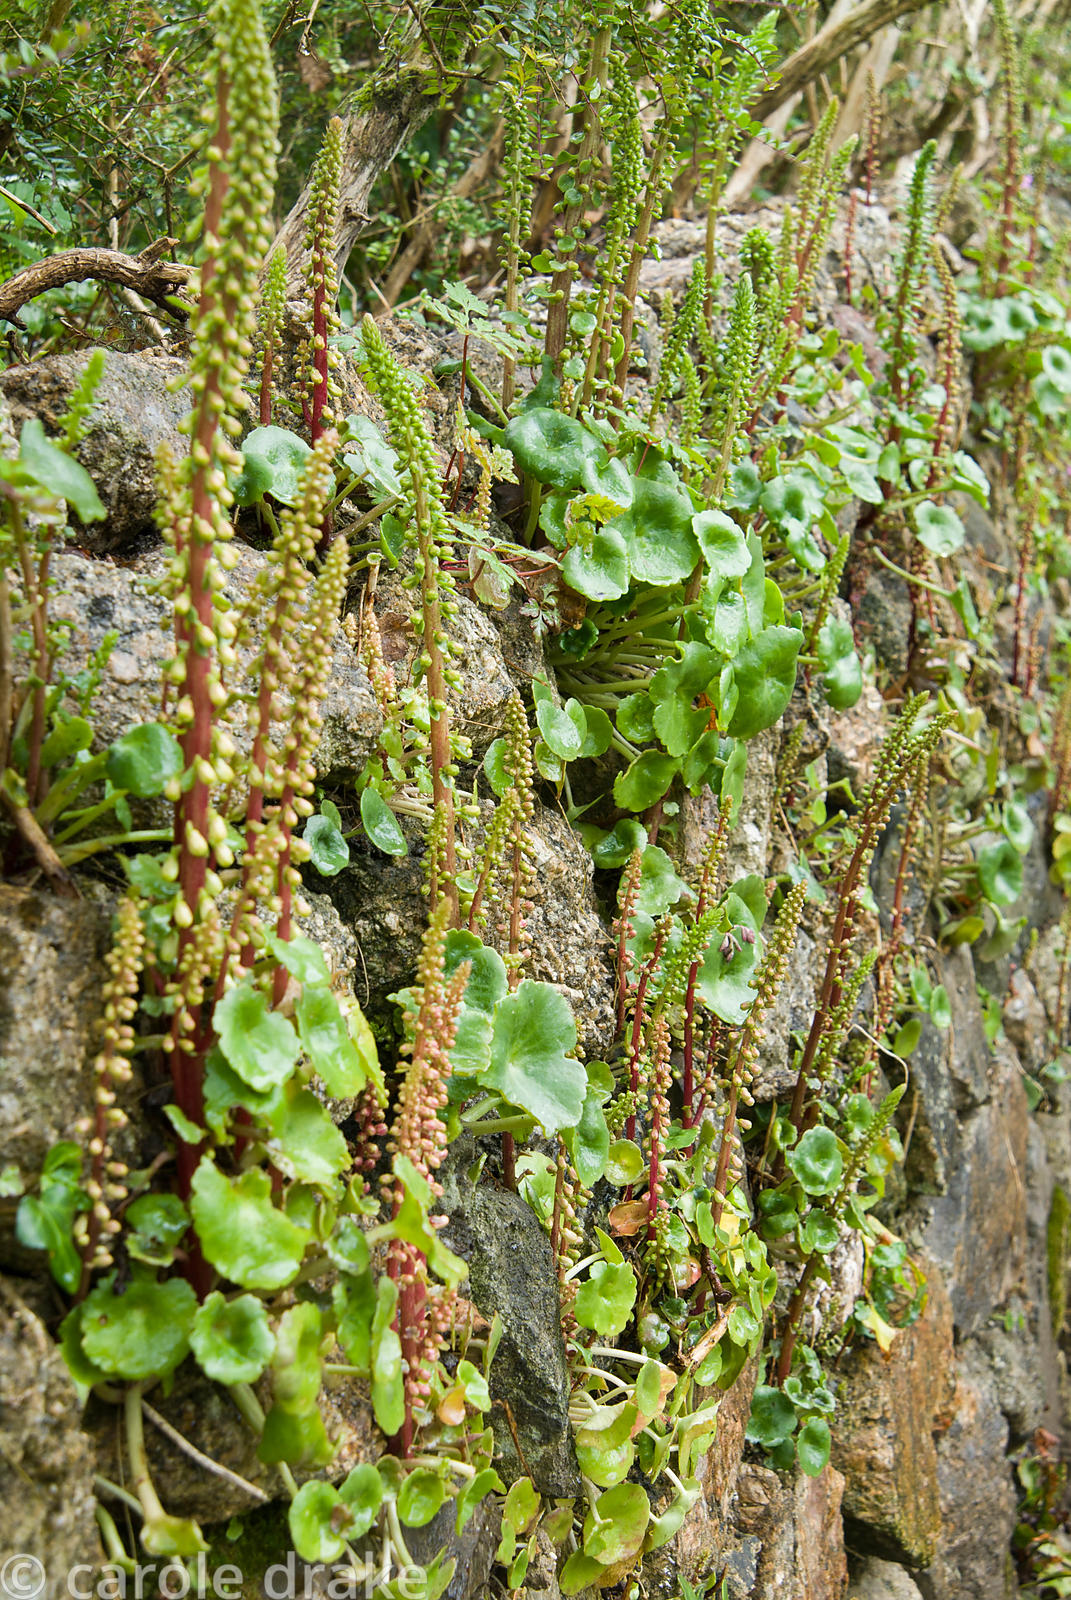 Stone wall colonised by navelwort, Umbilicus rupestris. Trewidden, Buryas Bridge, Penzance, Cornwall, UK